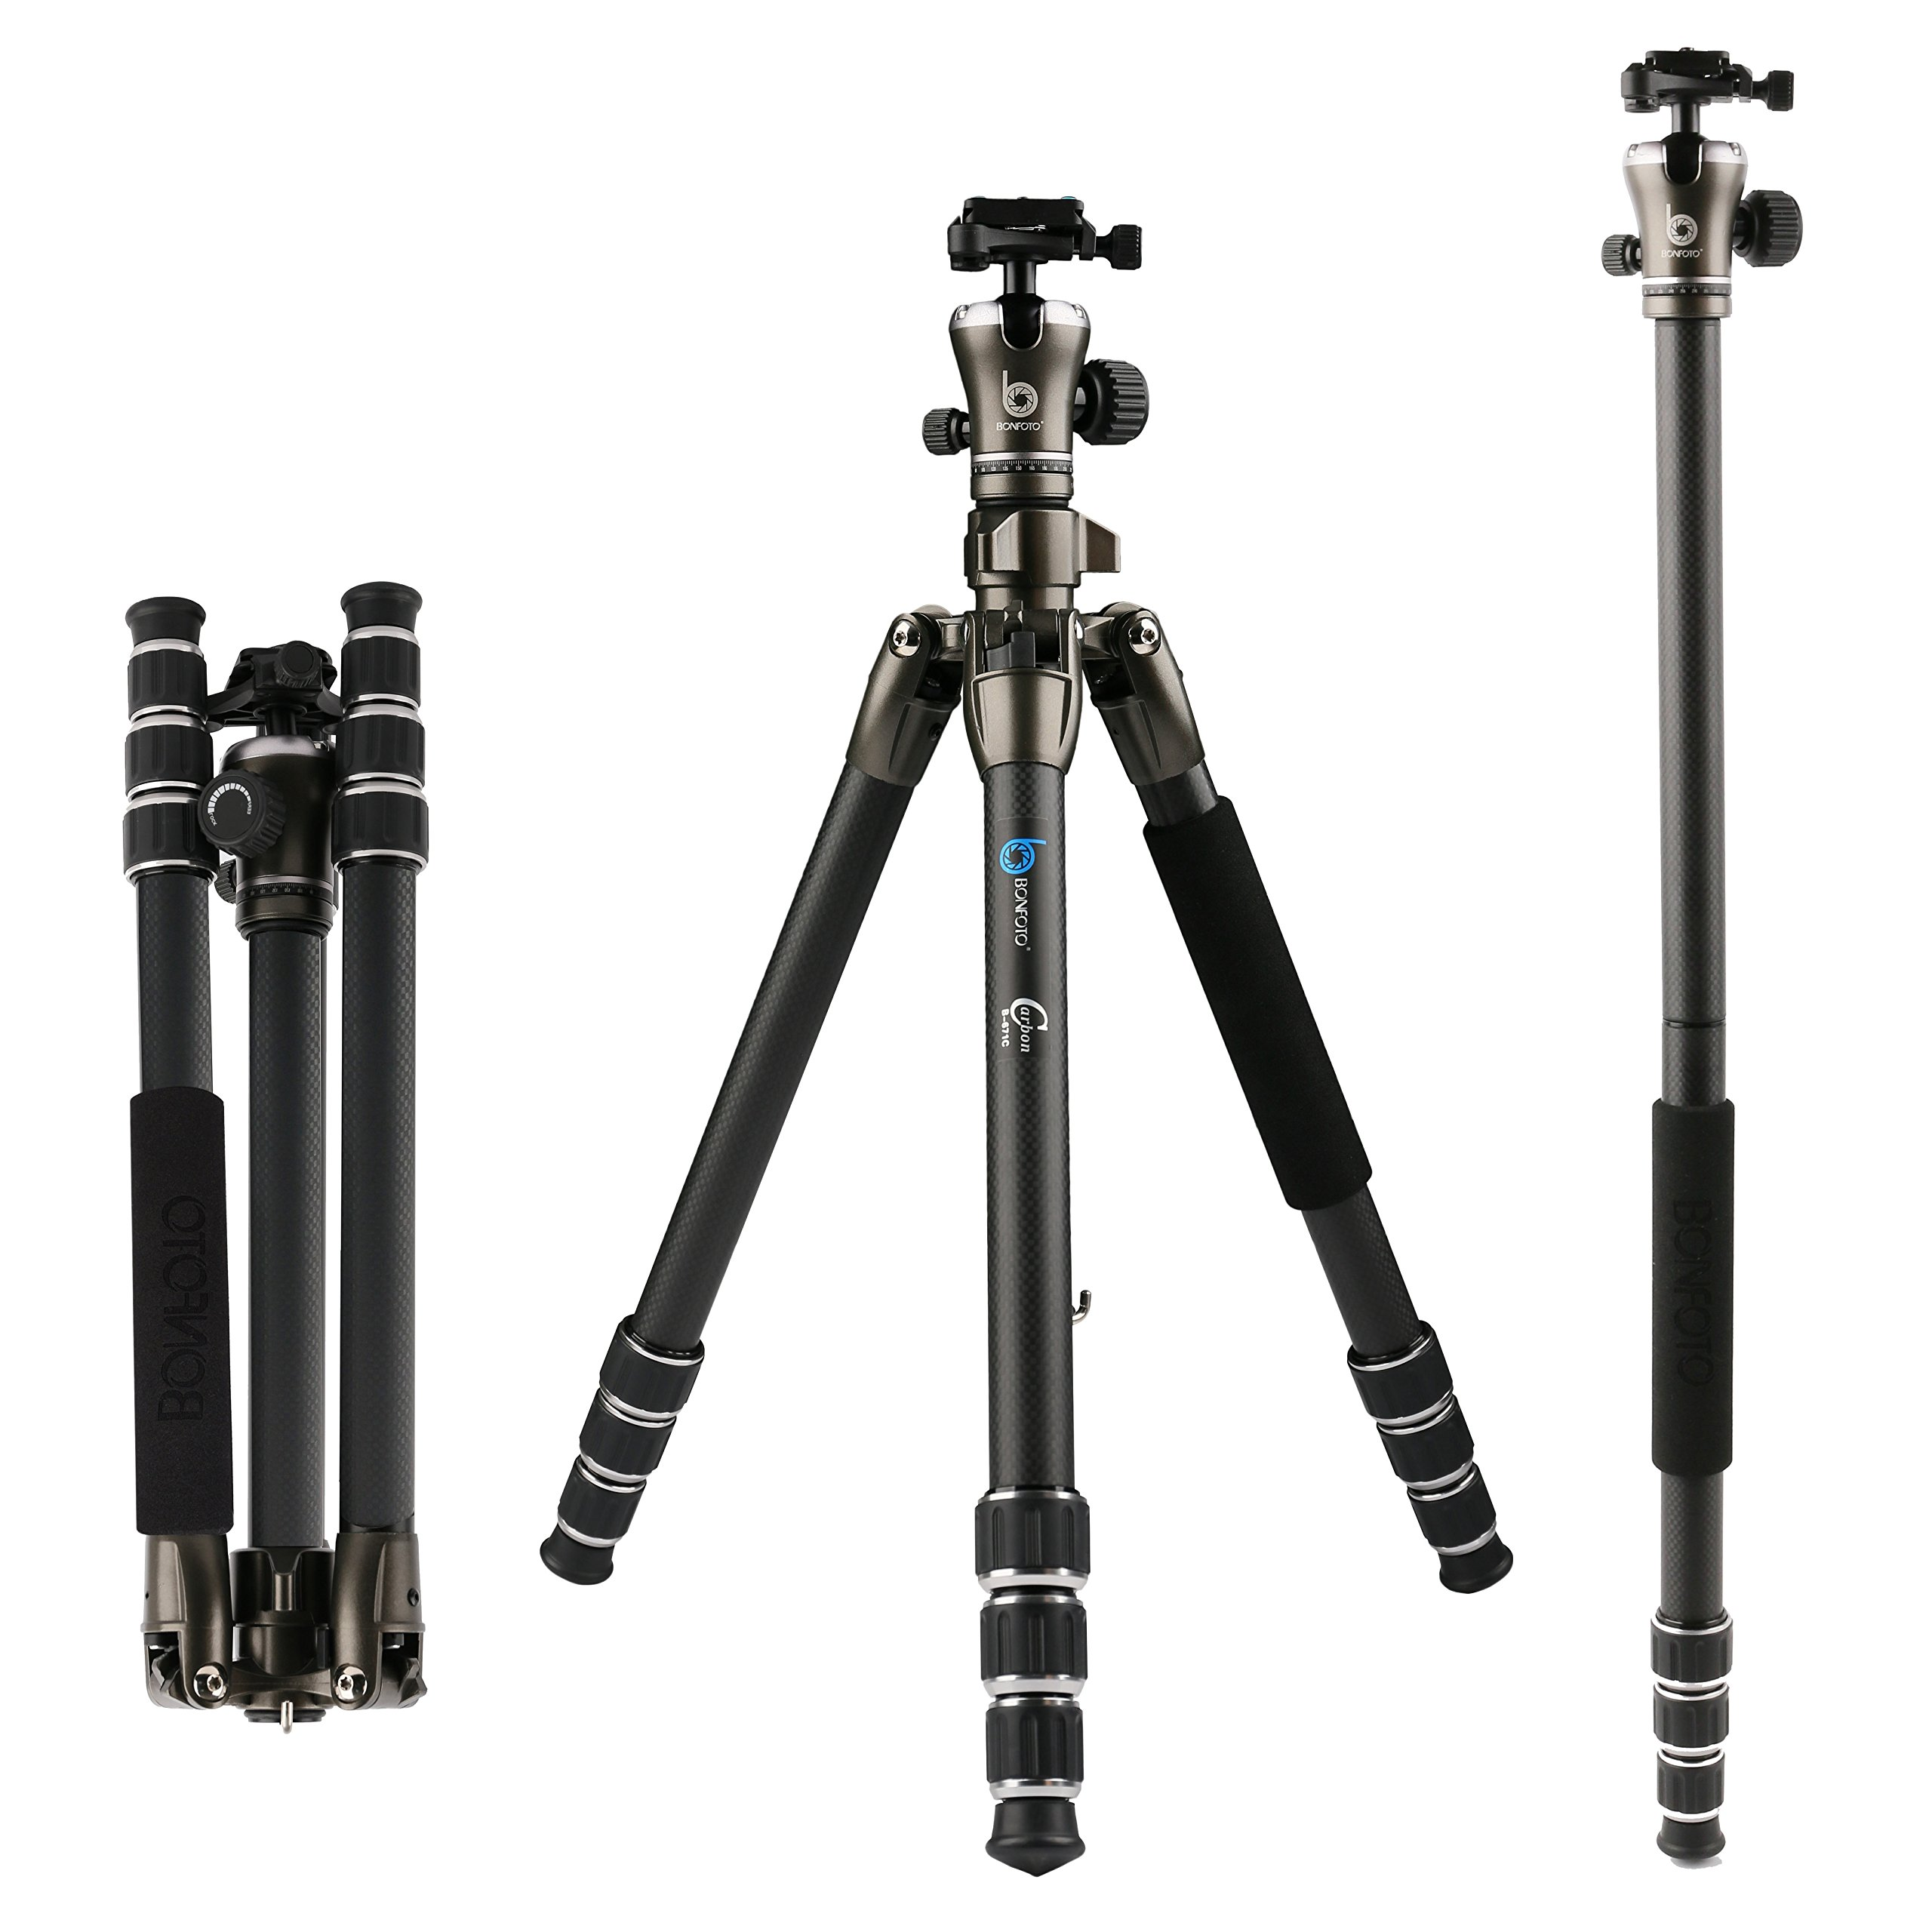 BONFOTO 55'' B671C Carbon Fiber Travel Tripod with Ball Head 8KG Load Capacity with 1/4'' Screw Quick Release Mounting Plate for Digital or Video Canon Nikon by BONFOTO